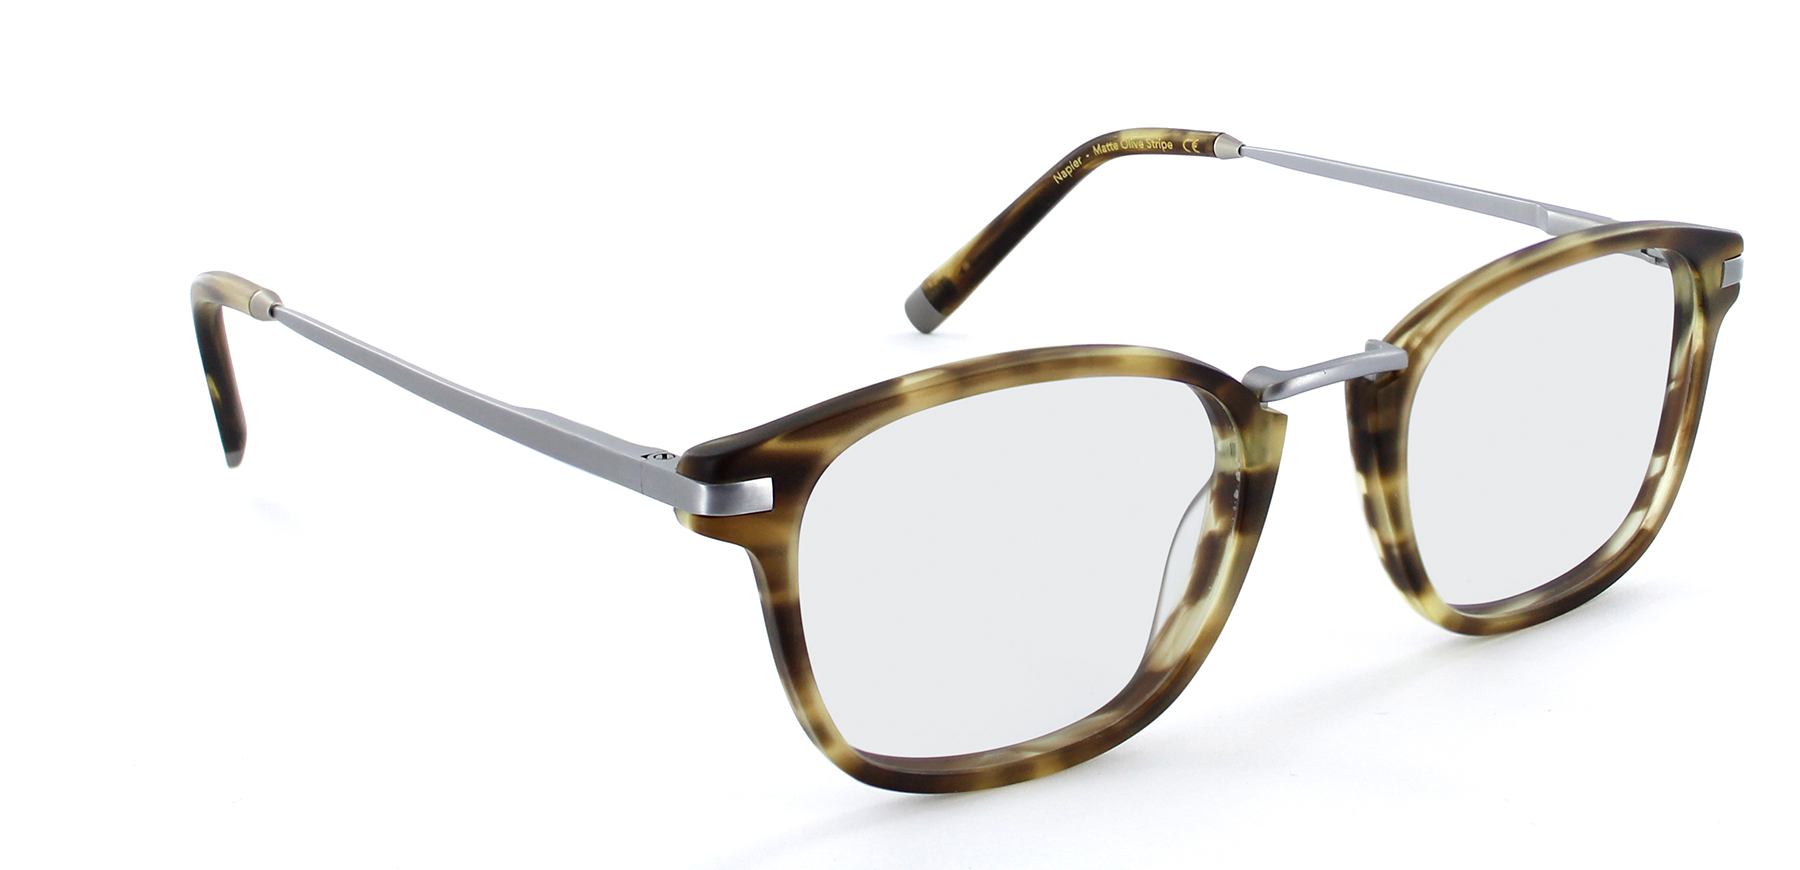 Napier_Matte_Olive_Stripe_Angle_Optical.jpg